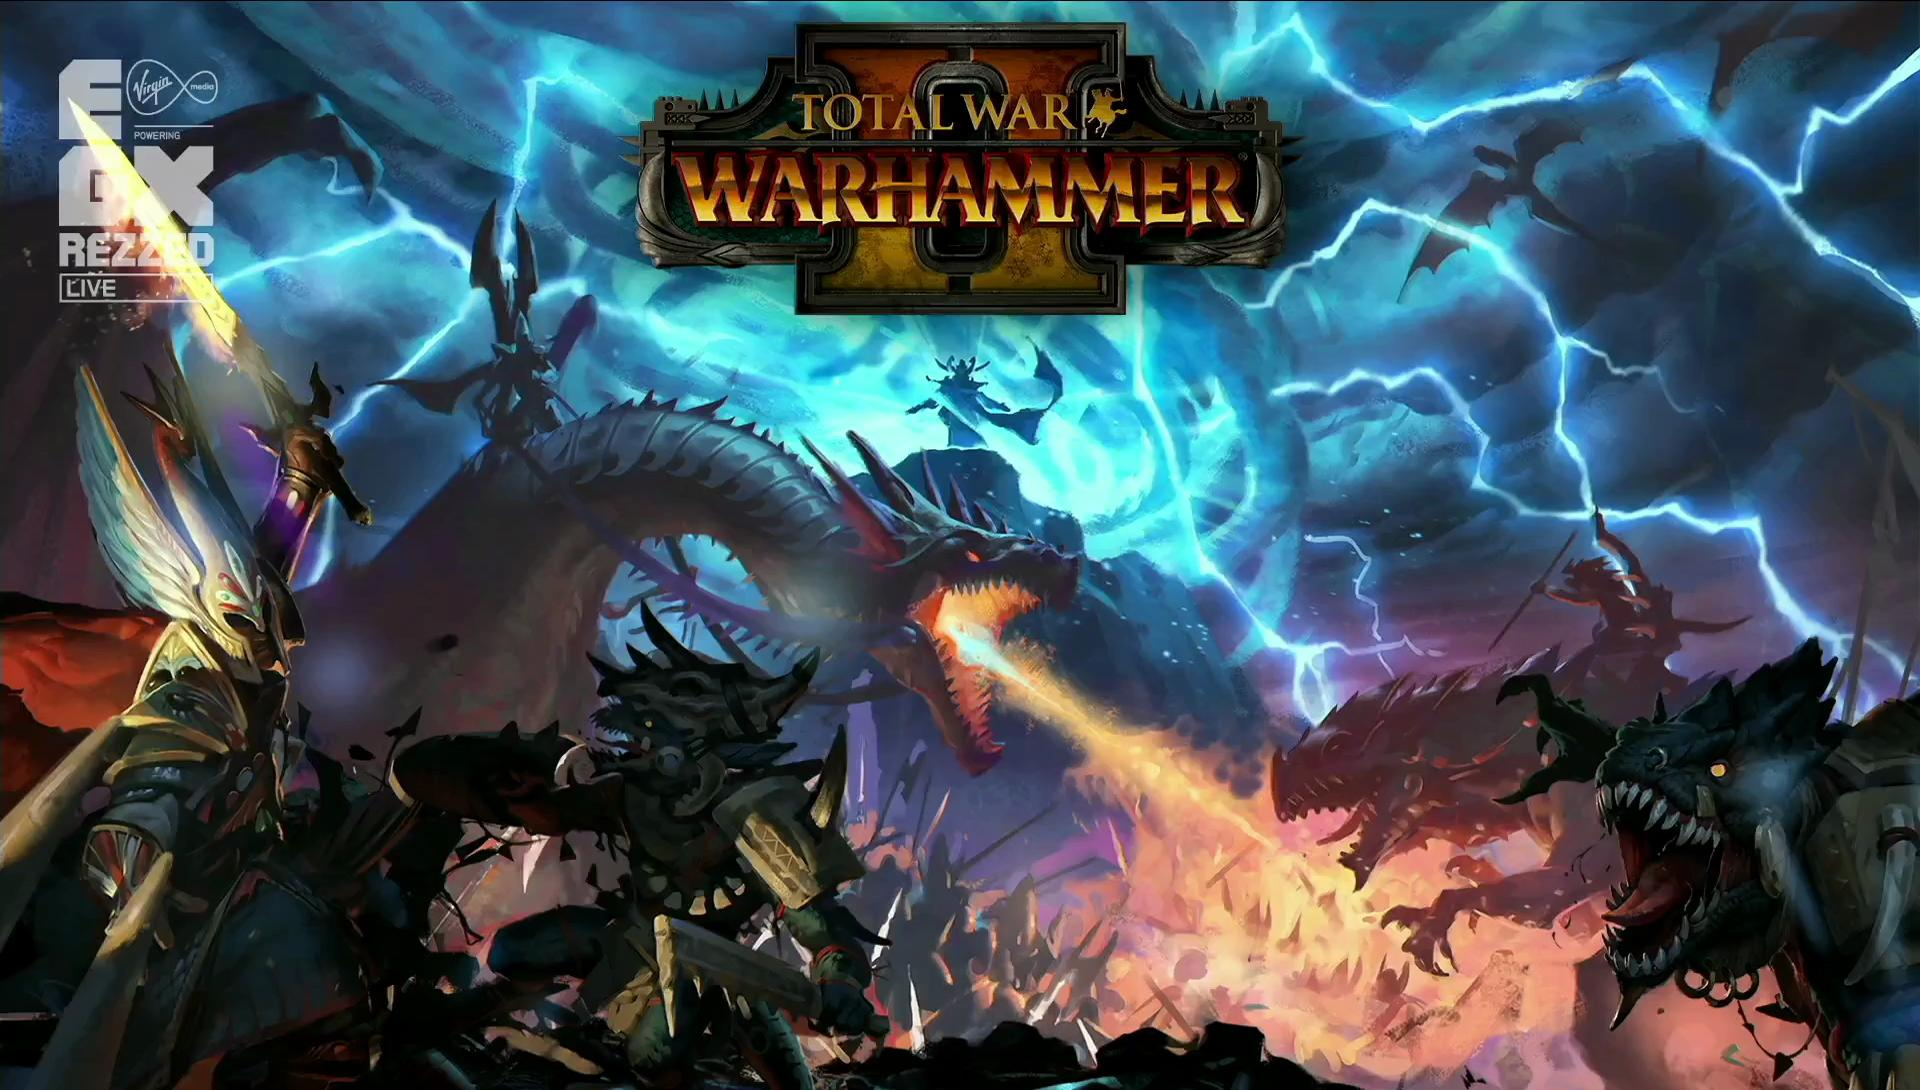 Total War Warhammer 2 Wallpaper: Warhammer Total War II Wallpaper